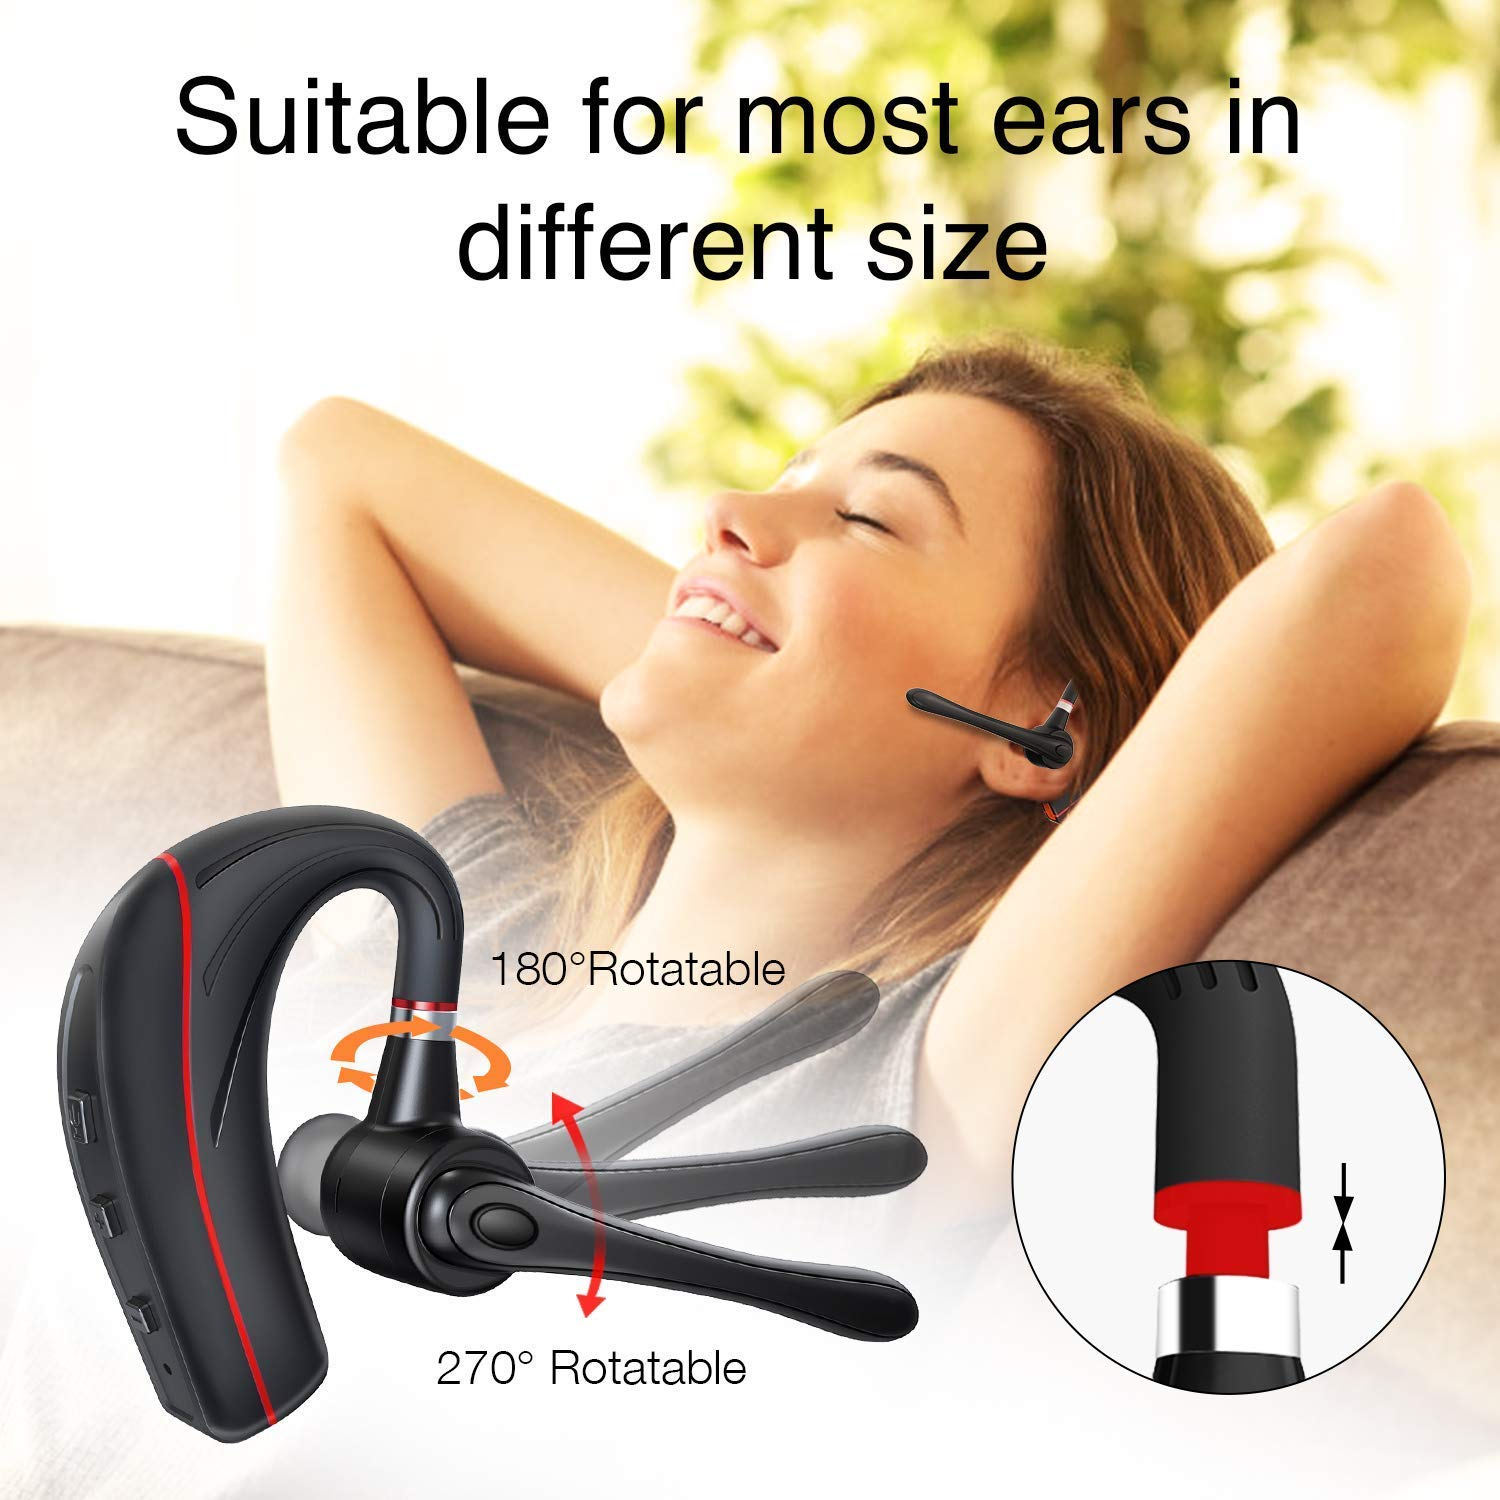 Bluetooth Headset, HandsFree Wireless Earpiece V5.0 with Mic for Business/Office/Driving Call [New Version] by HonShoop (Image #4)